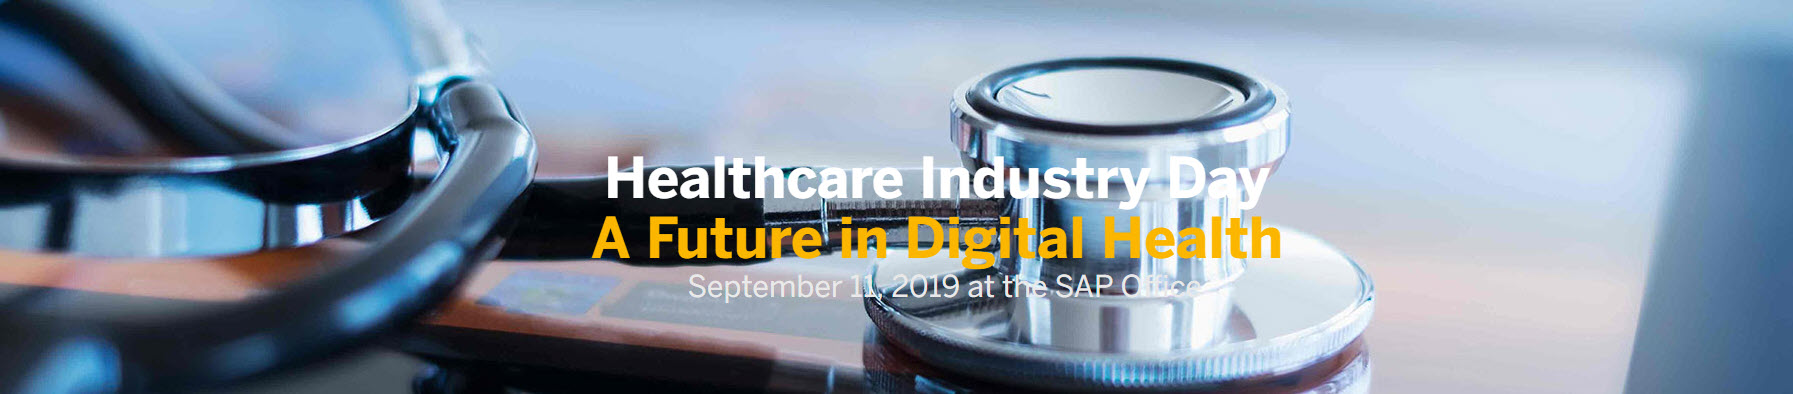 Healthcare Industry Day - A Future in Digital Health